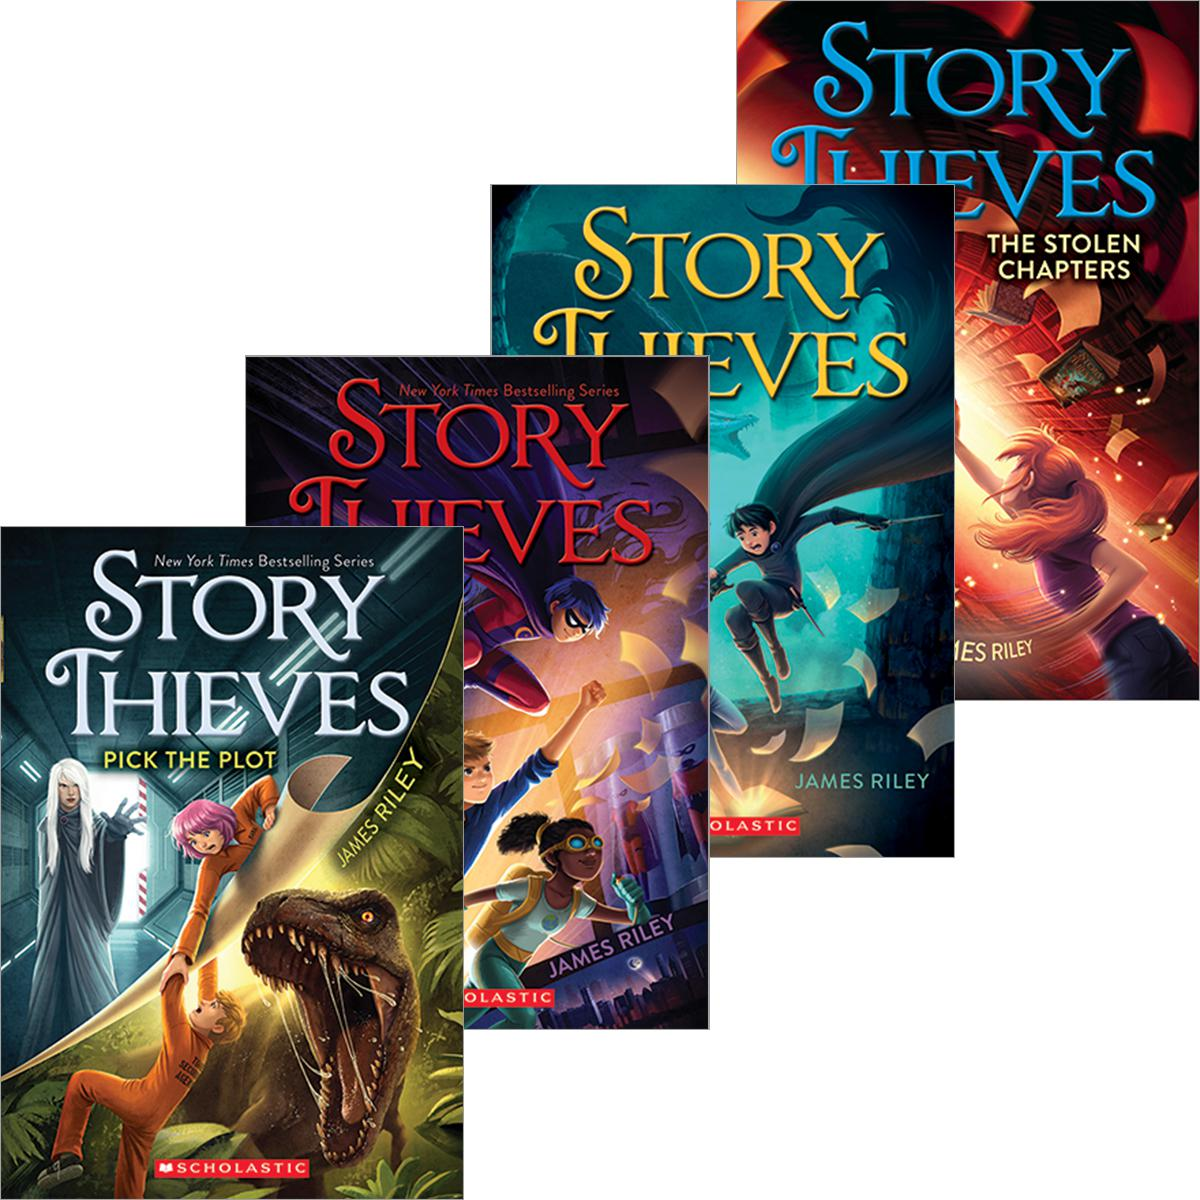 Story Thieves #1 - #5 Pack